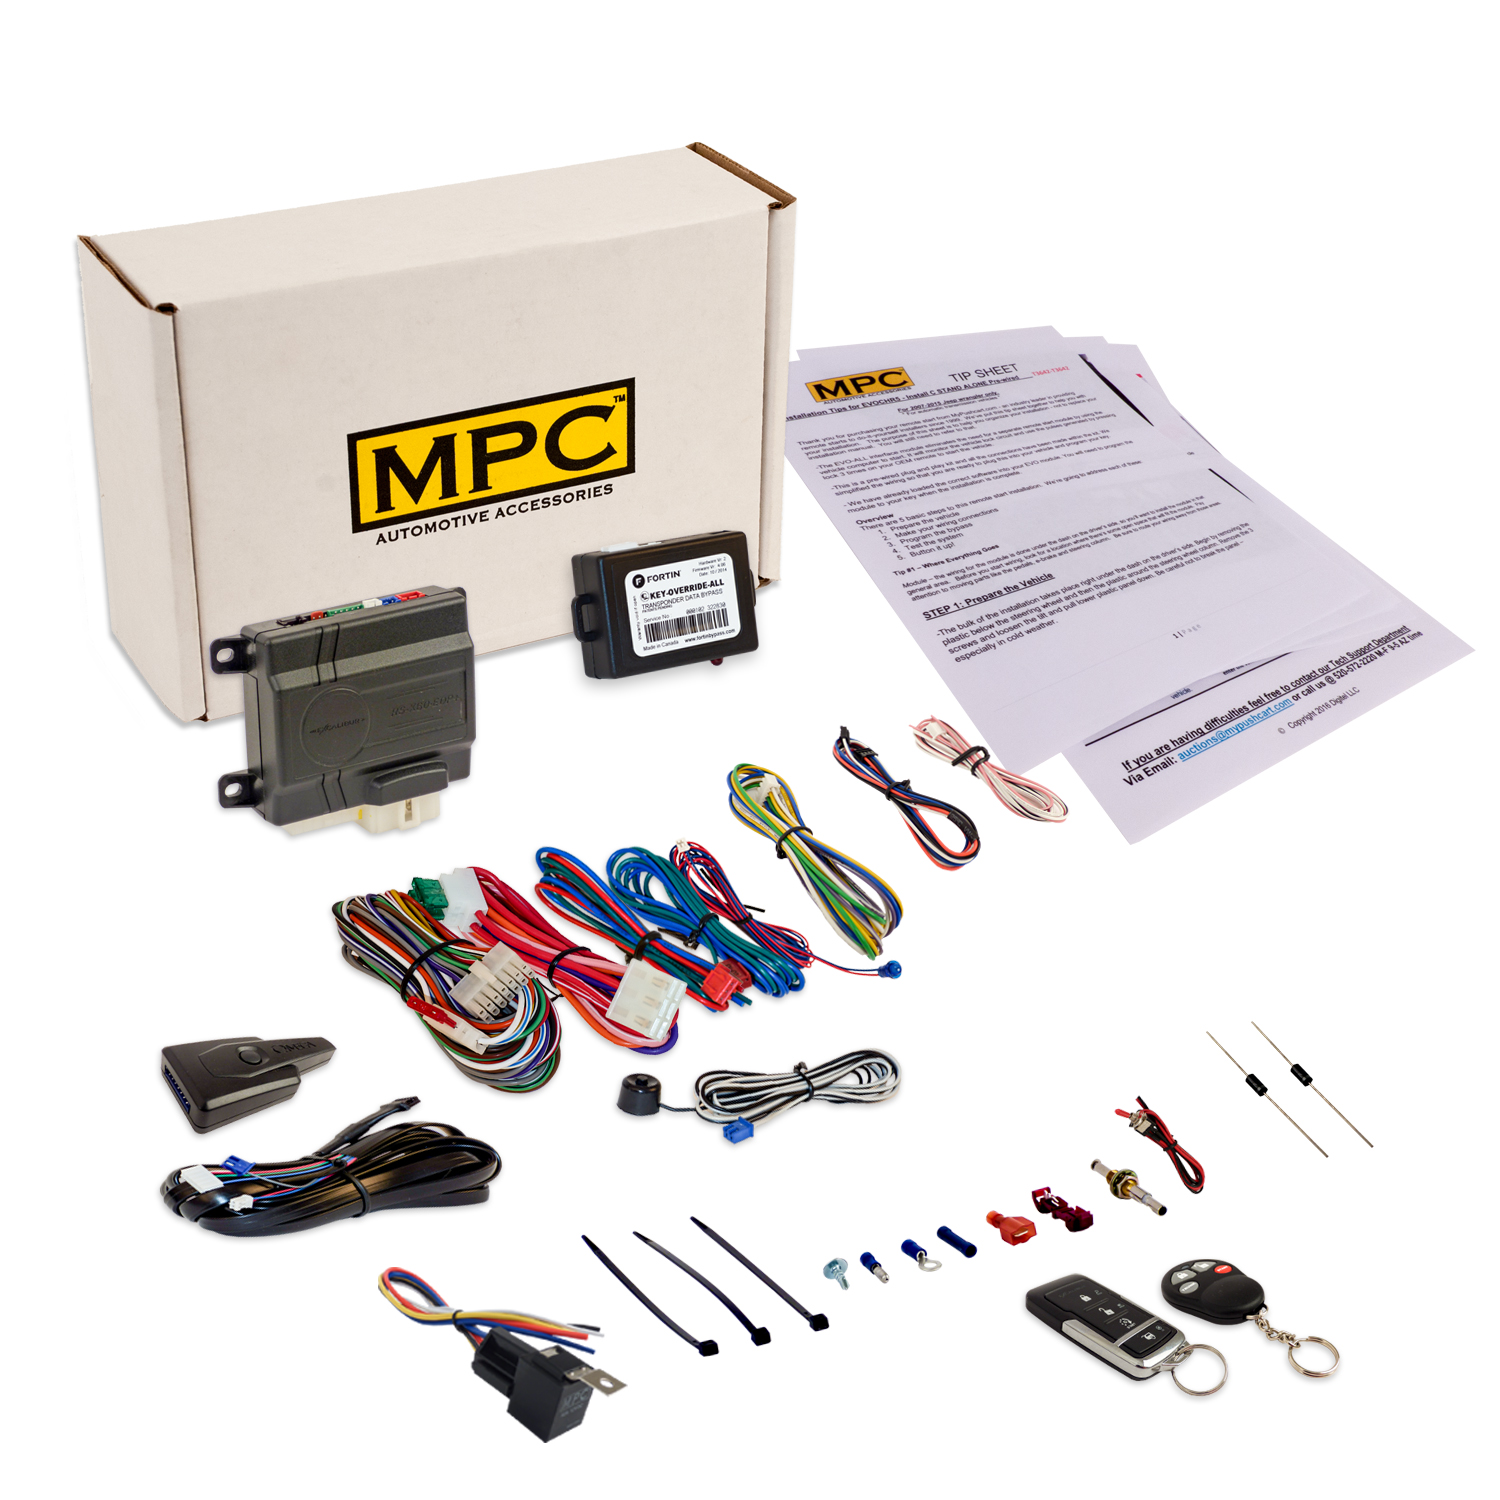 MPC Remote Start & Keyless Entry Fits Select Lincoln, Maz...